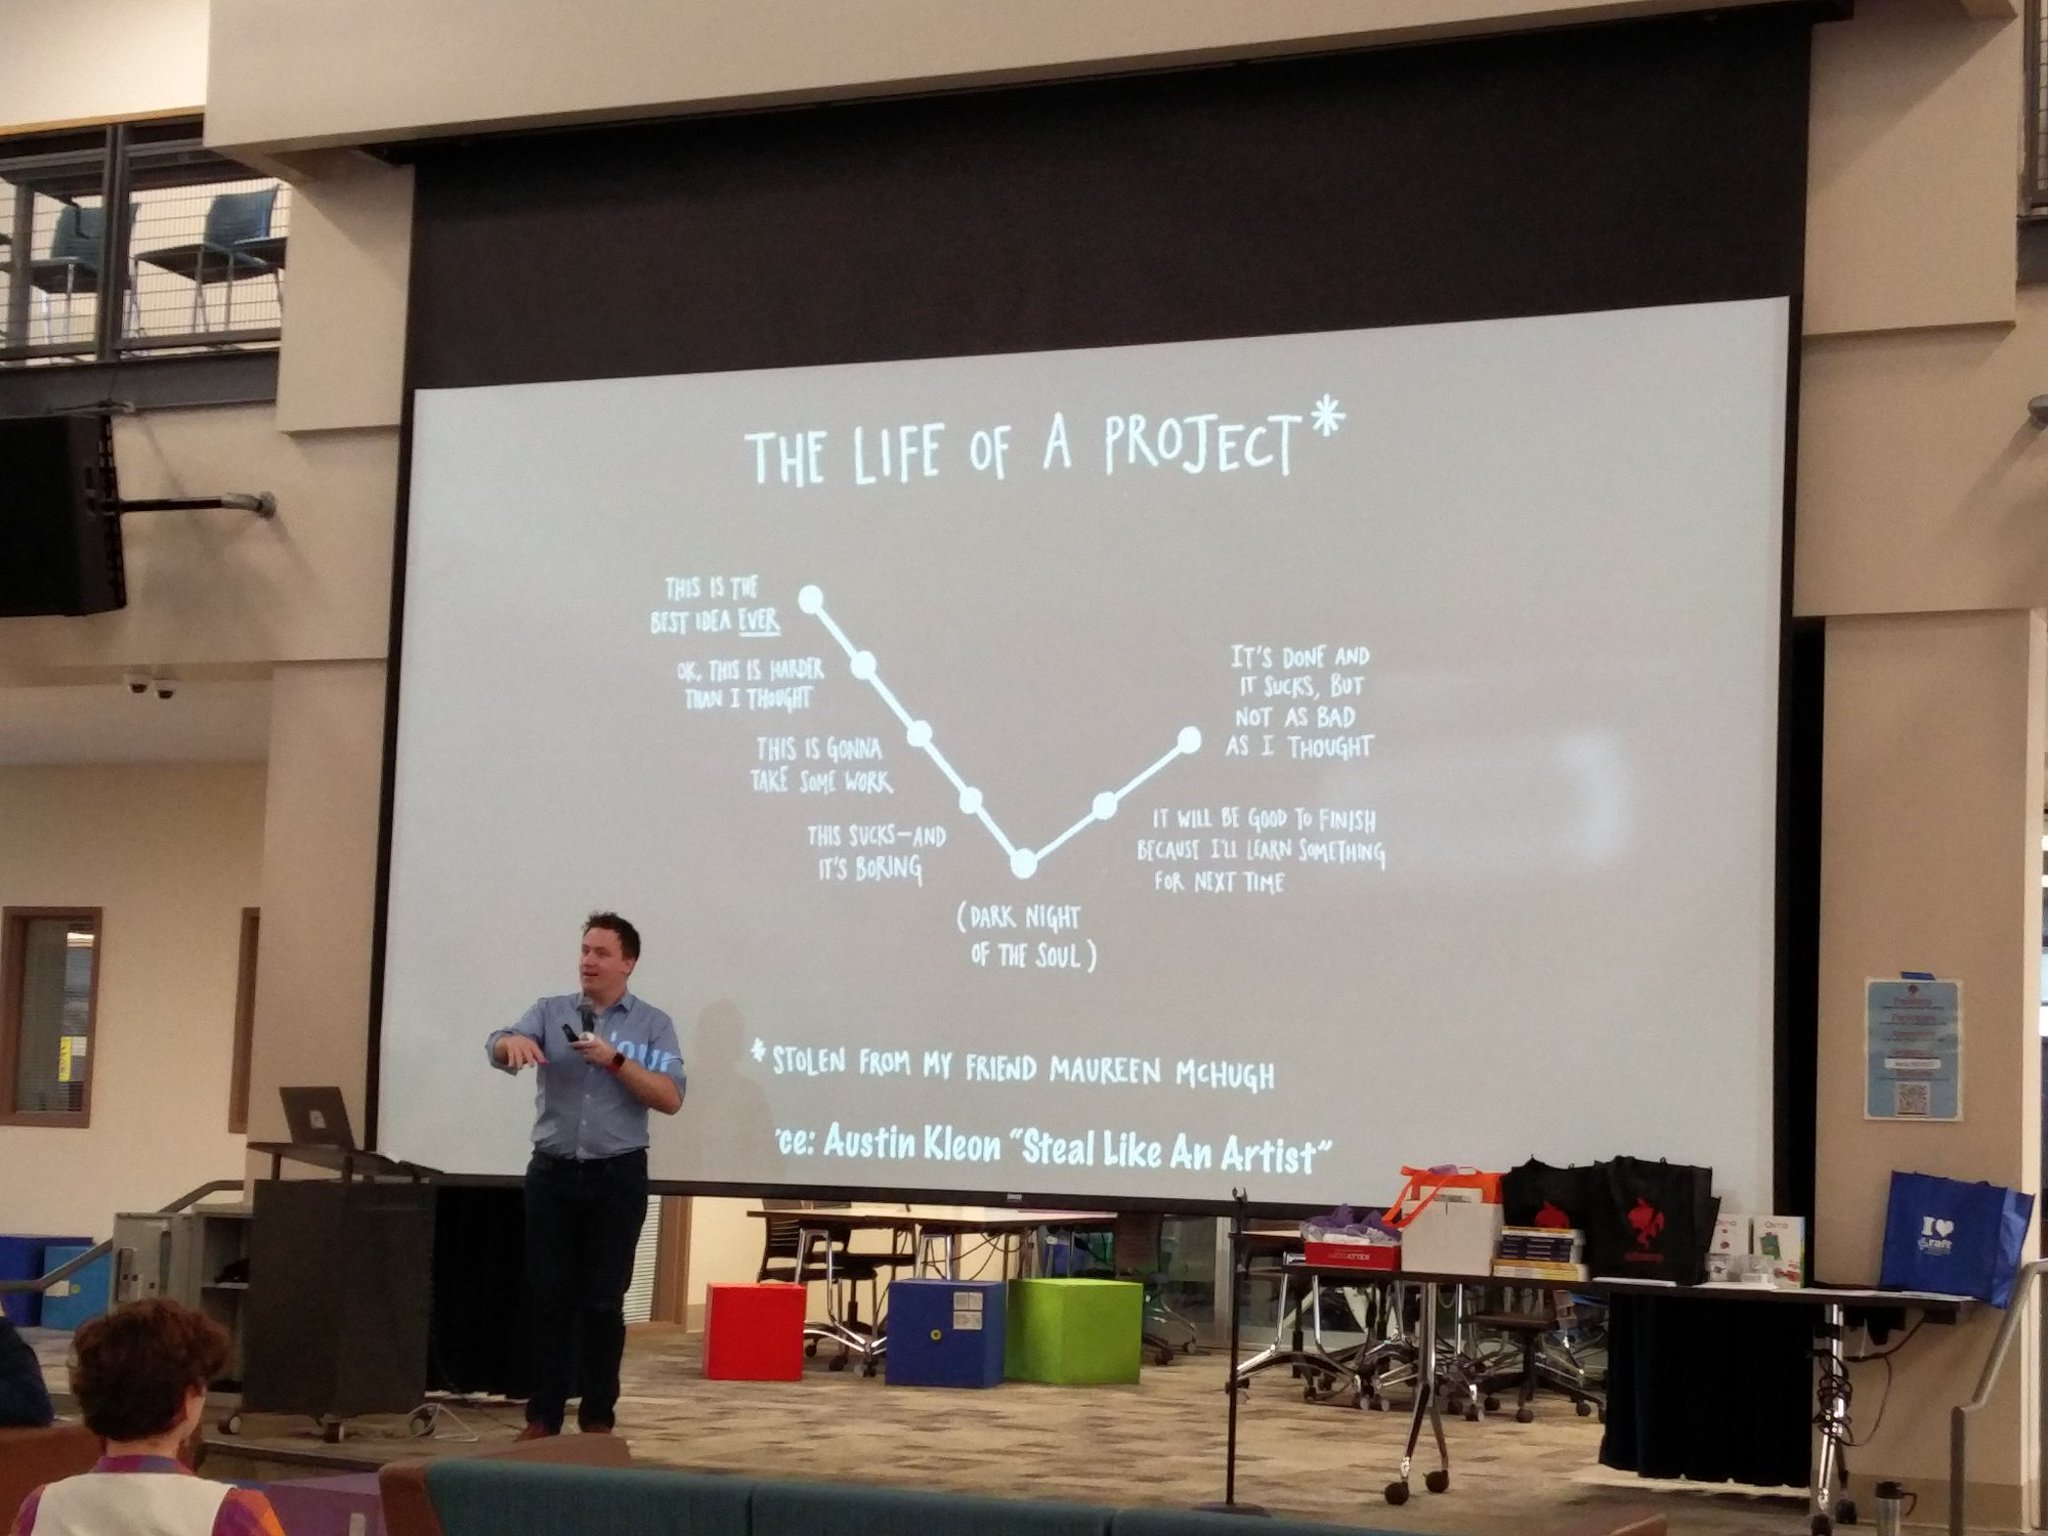 The Life of a Project via @jamestsanders #edcampsv https://t.co/NGTJJtB3Sx